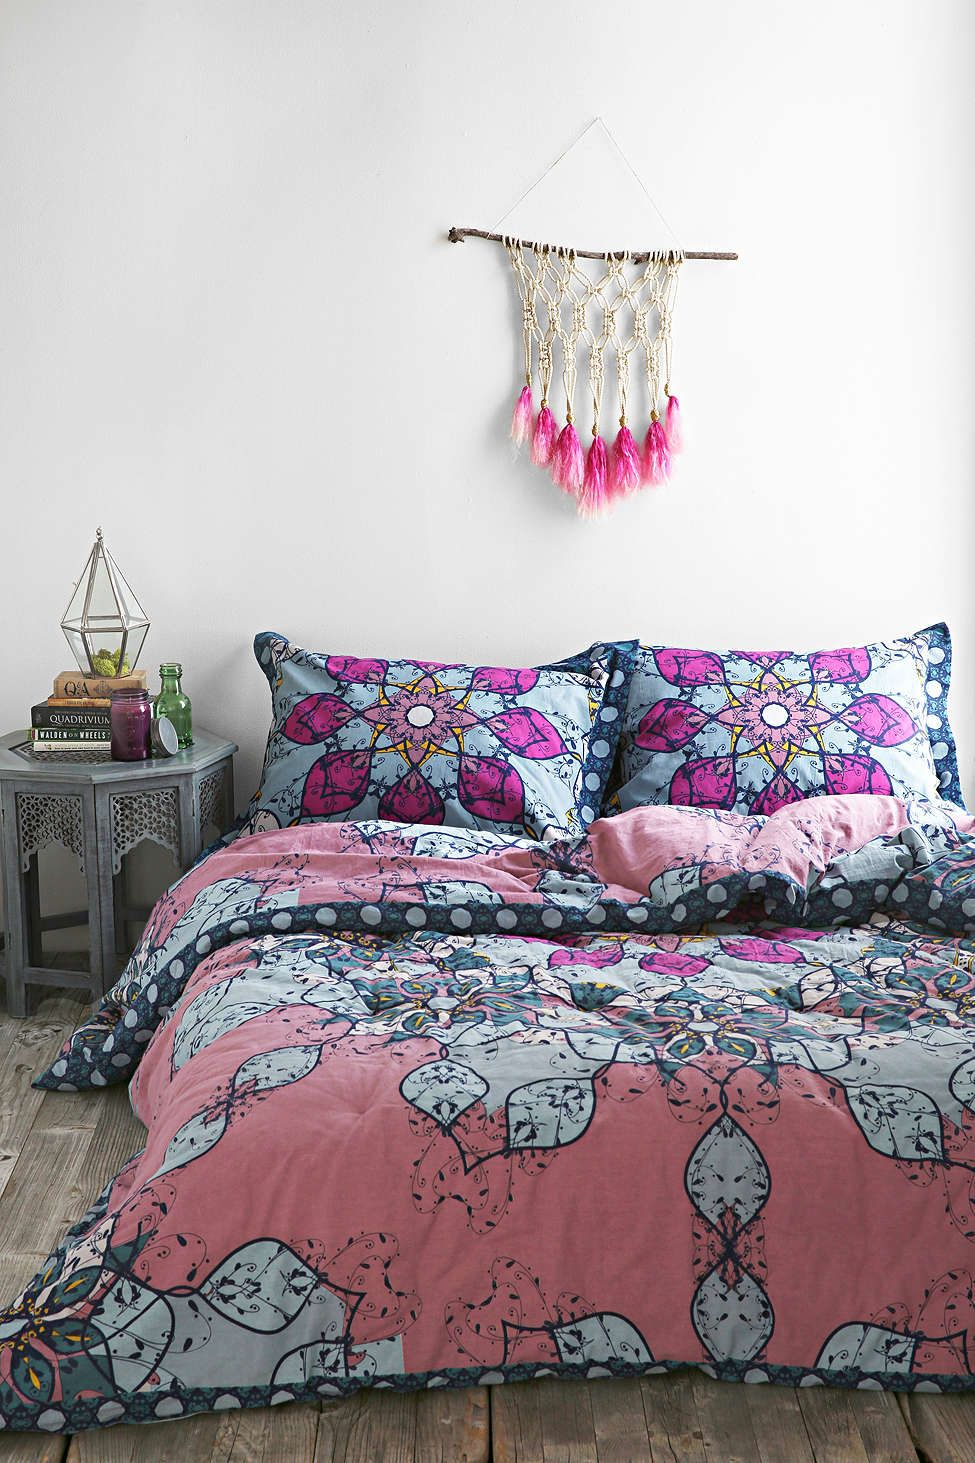 Magical Thinking Astra Medallion Comforter Daydream Bedroom Bettwäsche Boho Style